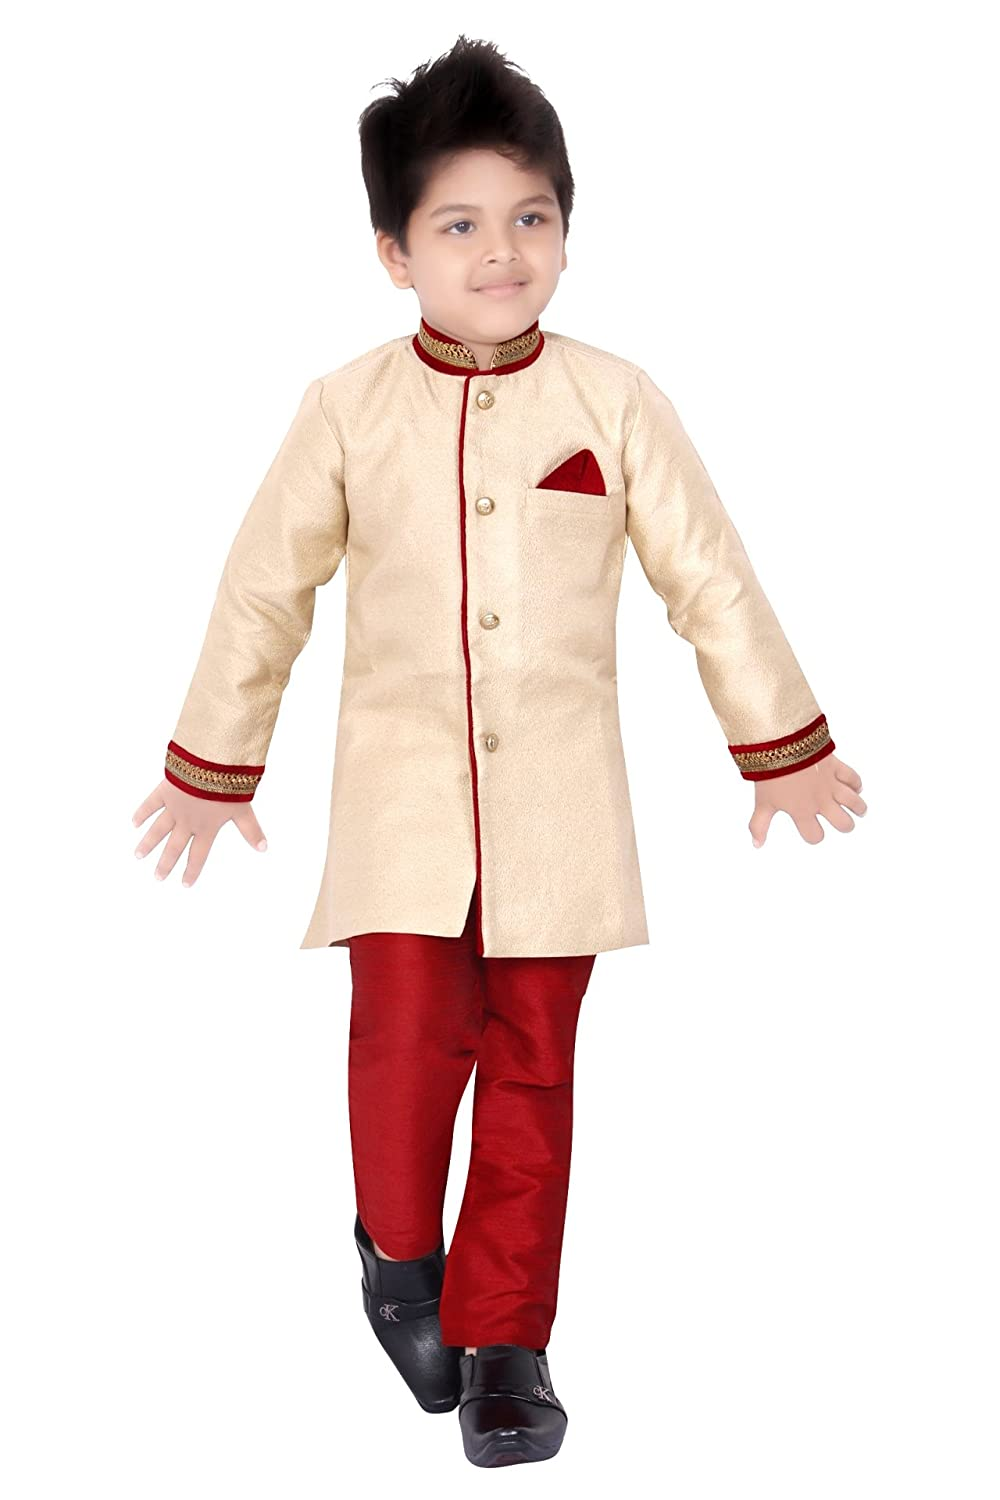 363173abcfebb Boys Sherwani Suit With Pyjama And Pant Dress Indian Wedding Party ...